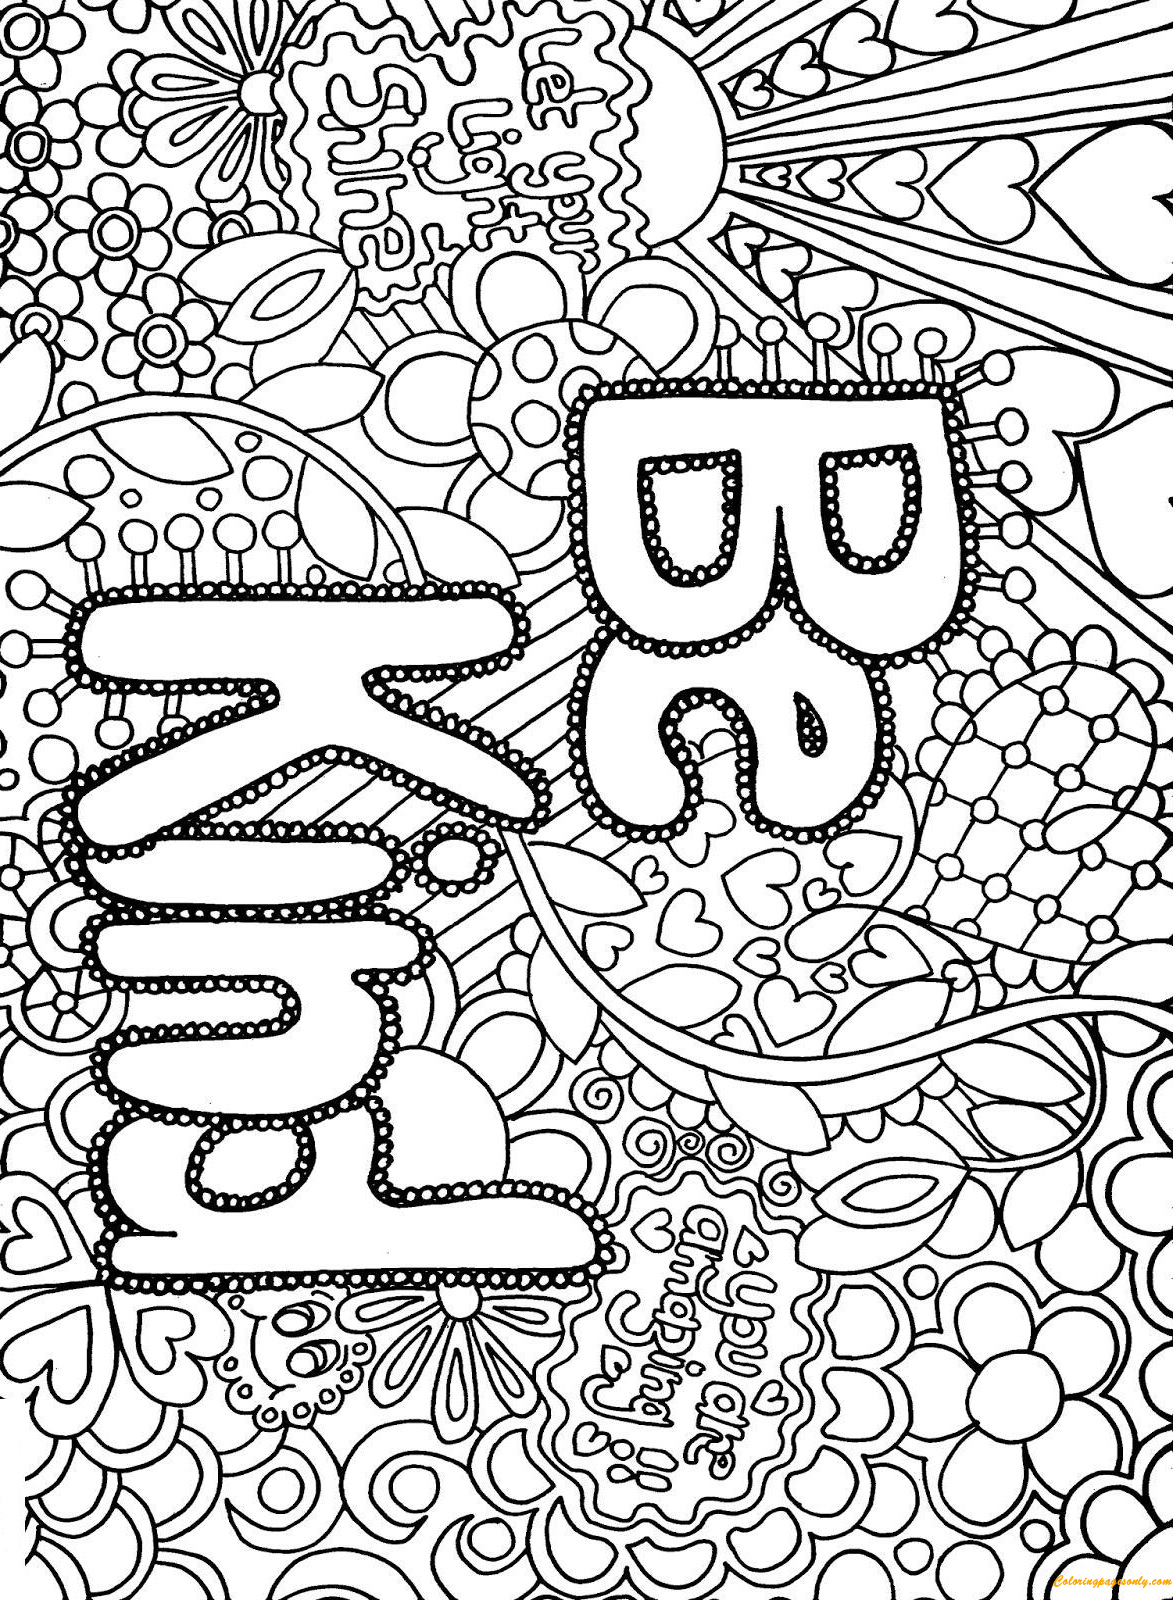 Coloring Page: Difficult Advanced Letter Be Kind Coloring Page